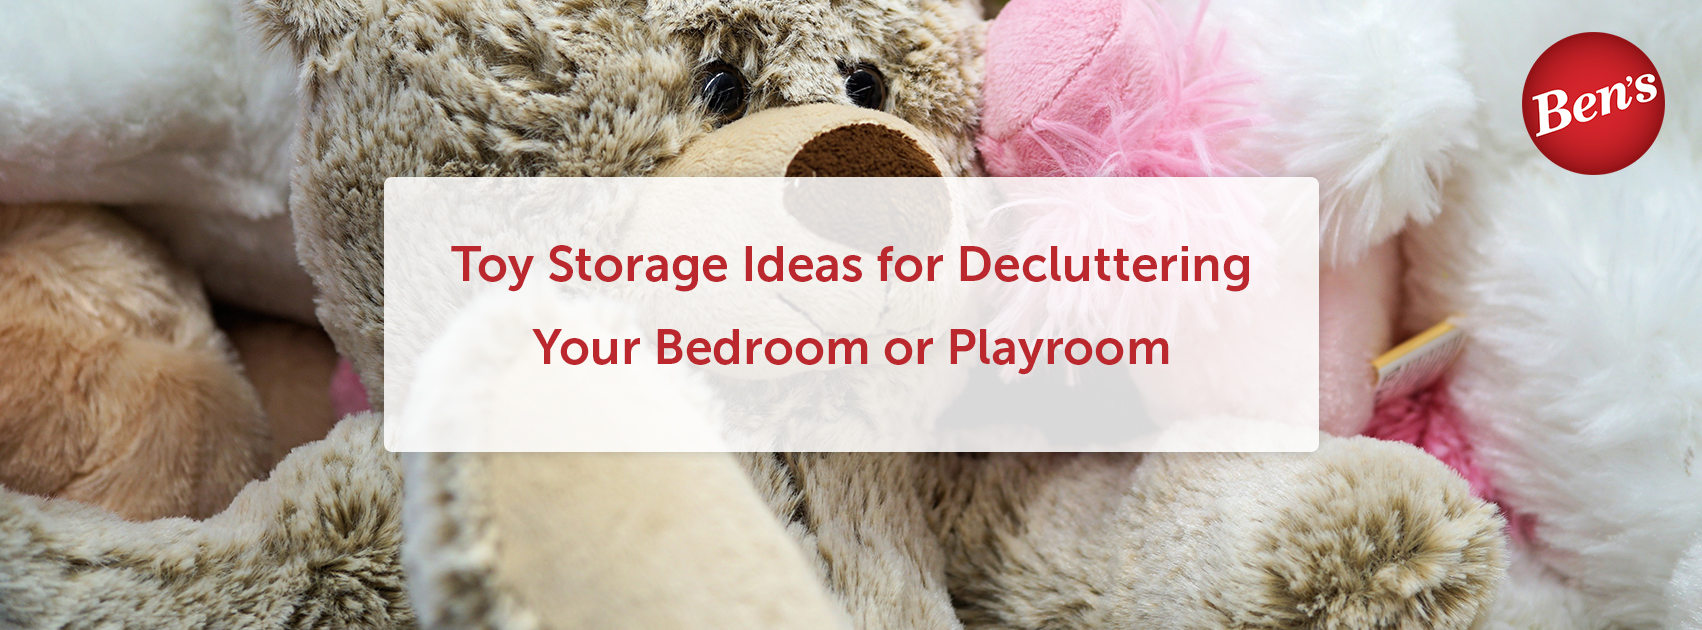 Toy Storage Ideas for Decluttering Your Bedroom or Playroom